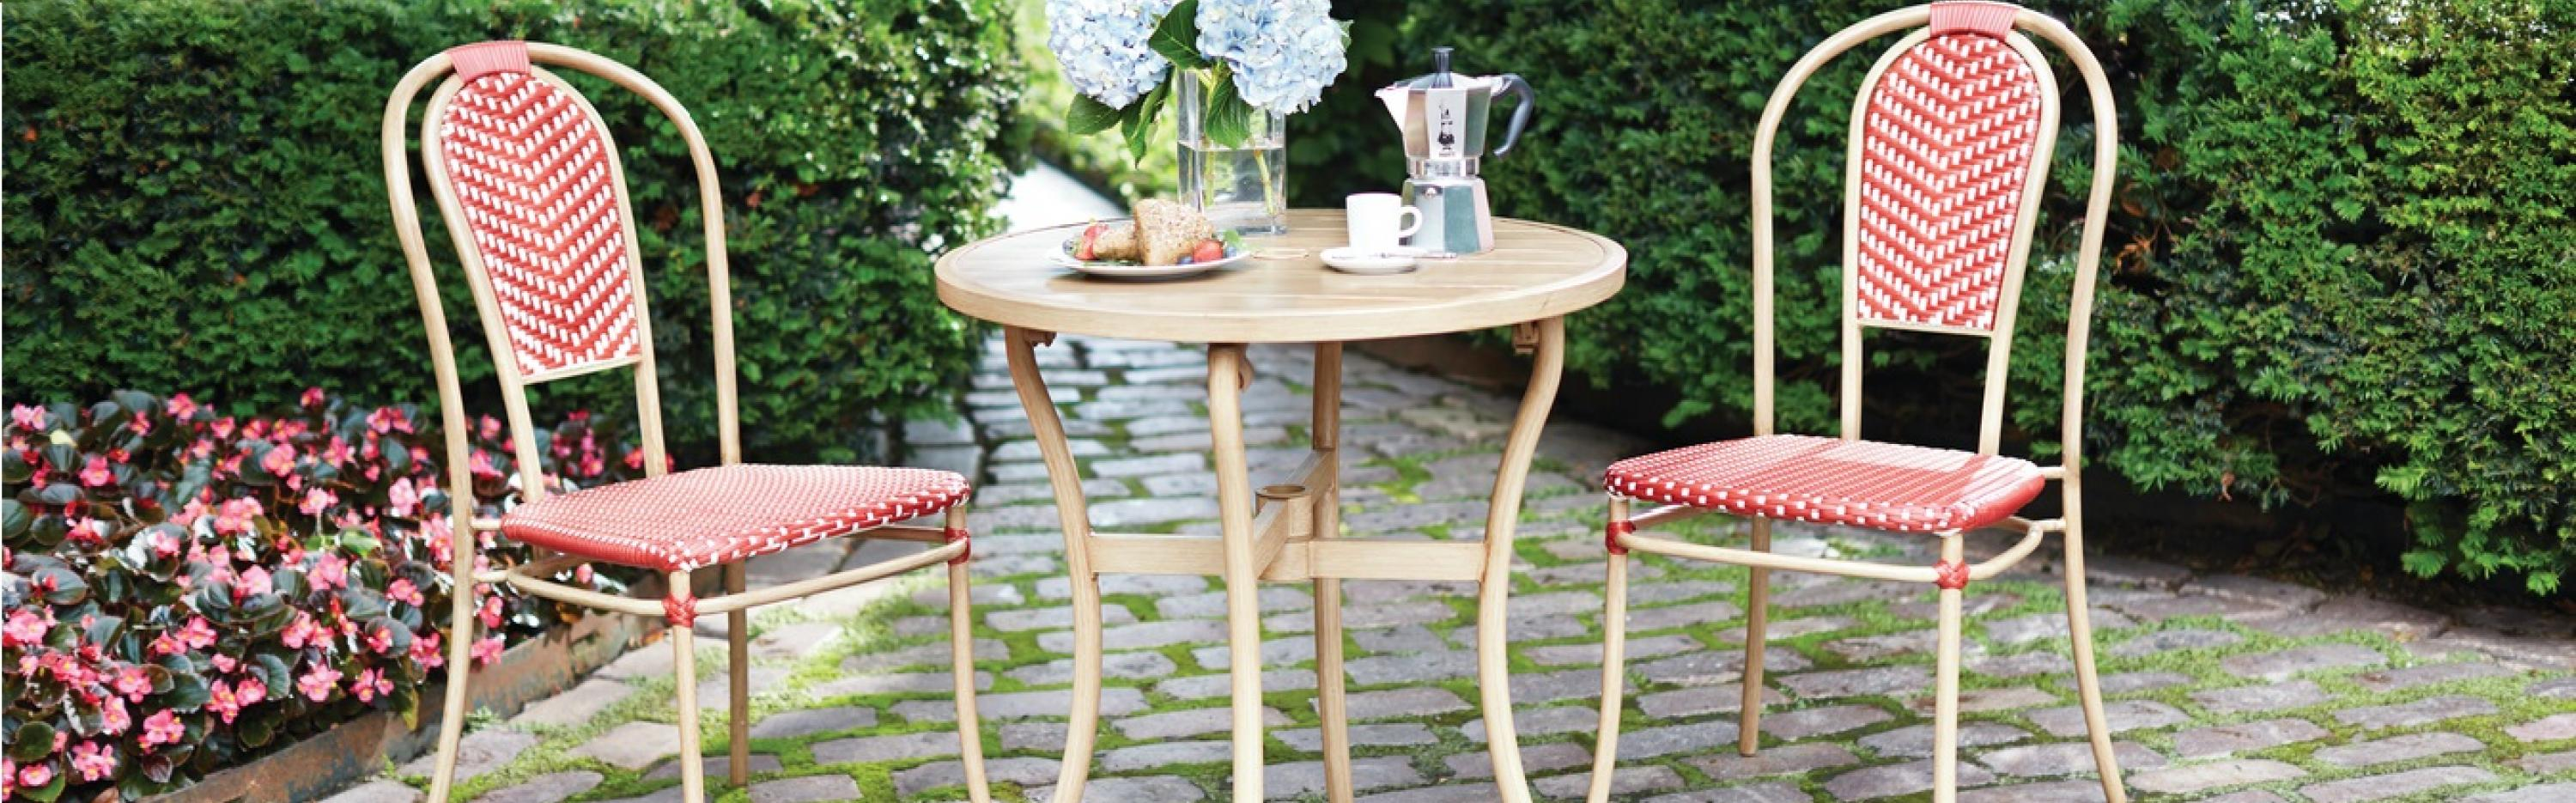 The Home Depot   Patio Design Guide: Ideas to Spruce Up Your Space ...